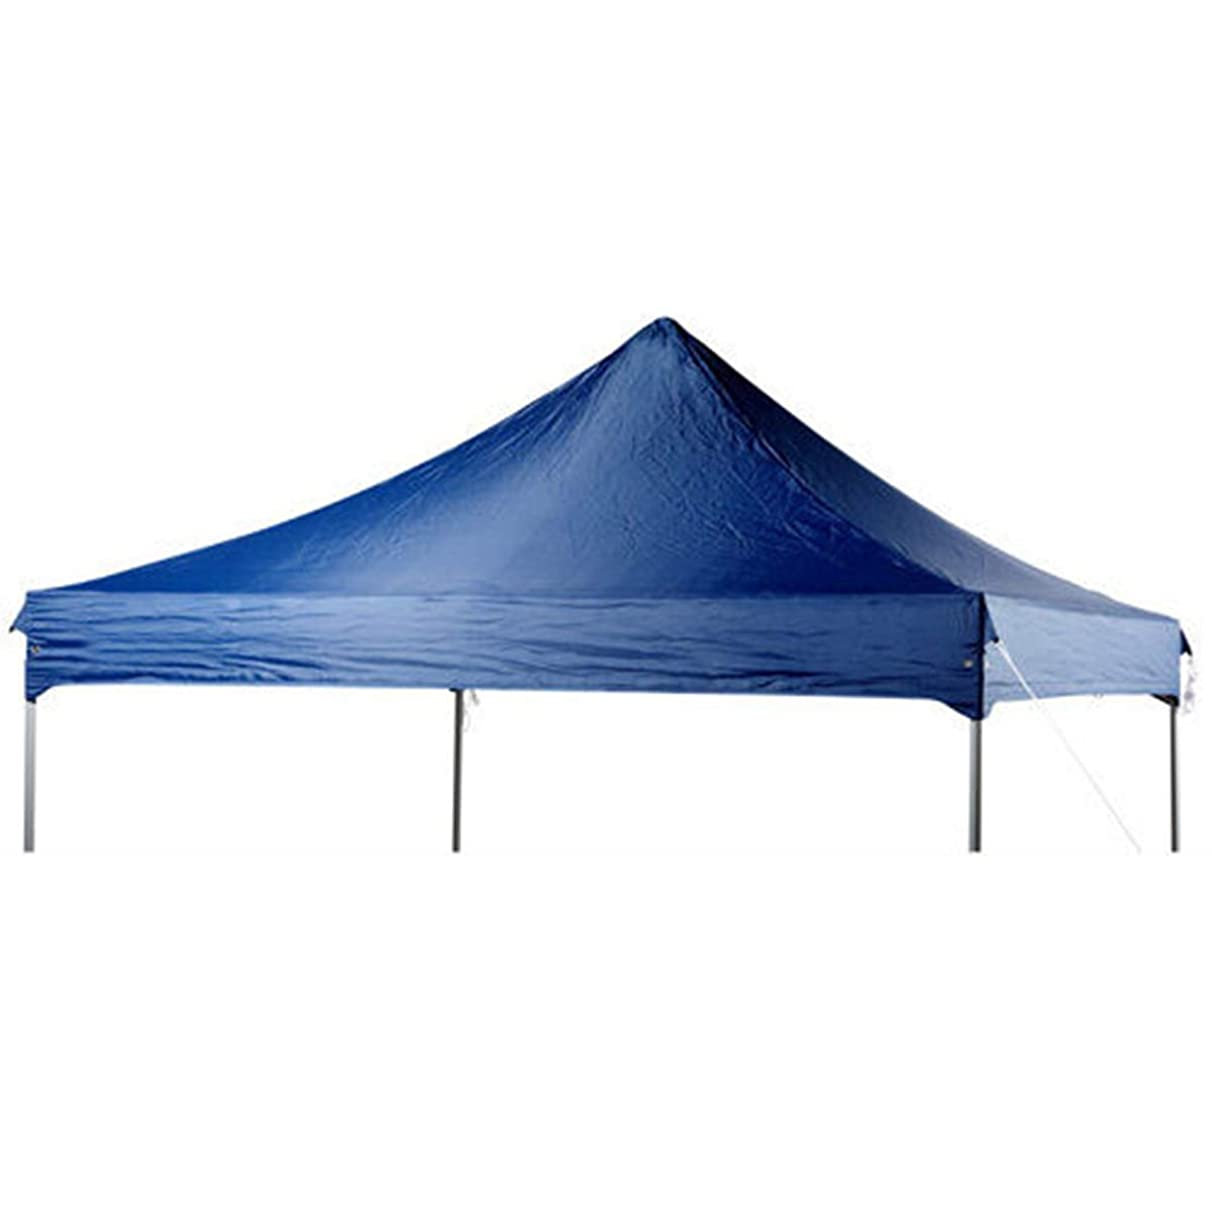 HEEGNPD Tent Canopy Cover Top Roof Replacement Polyester Waterproof Sun Shade Cloth Cover Outdoor Garden Yard Shade Accessories